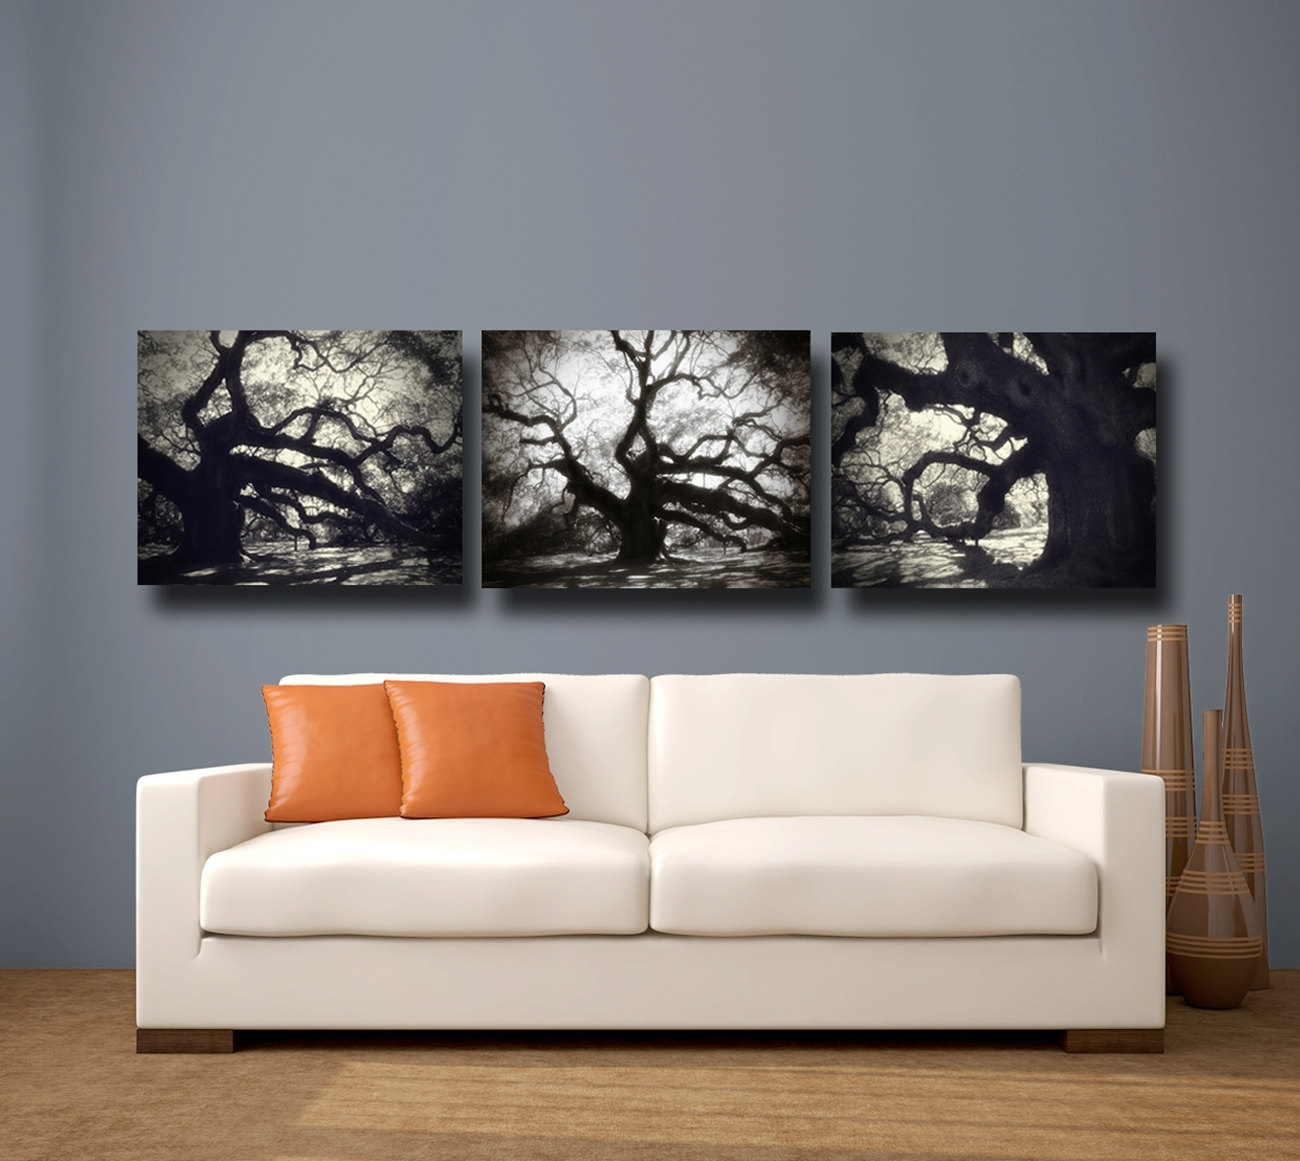 Wall Art Designs: Black And White Canvas Wall Art Astounding Throughout Most Current Black And White Photography Canvas Wall Art (View 3 of 15)